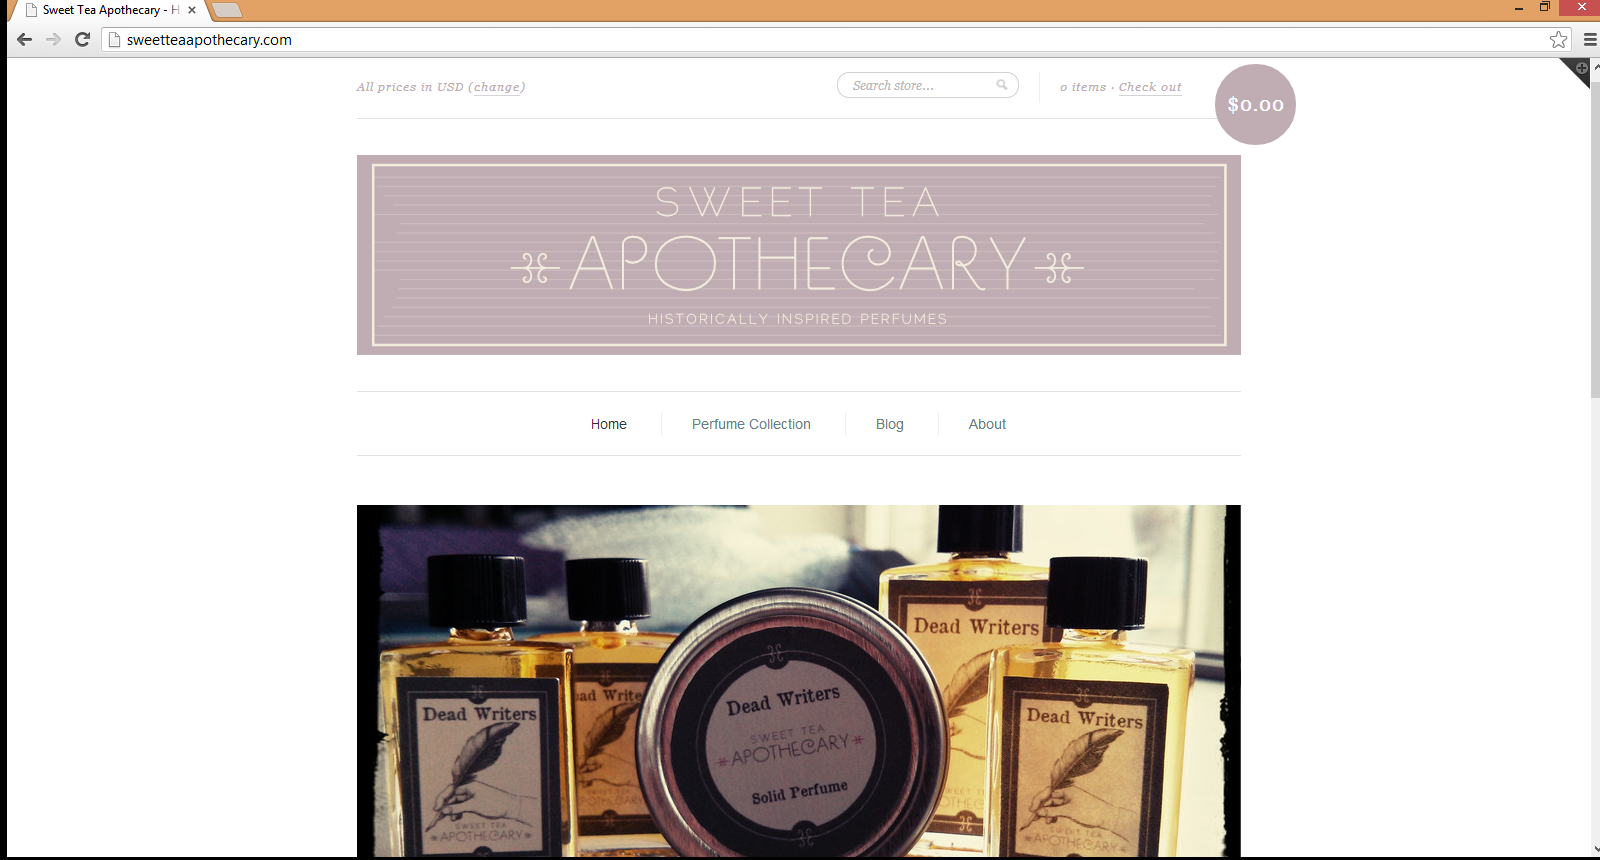 sneak peak at new Sweet Tea Apothecary website